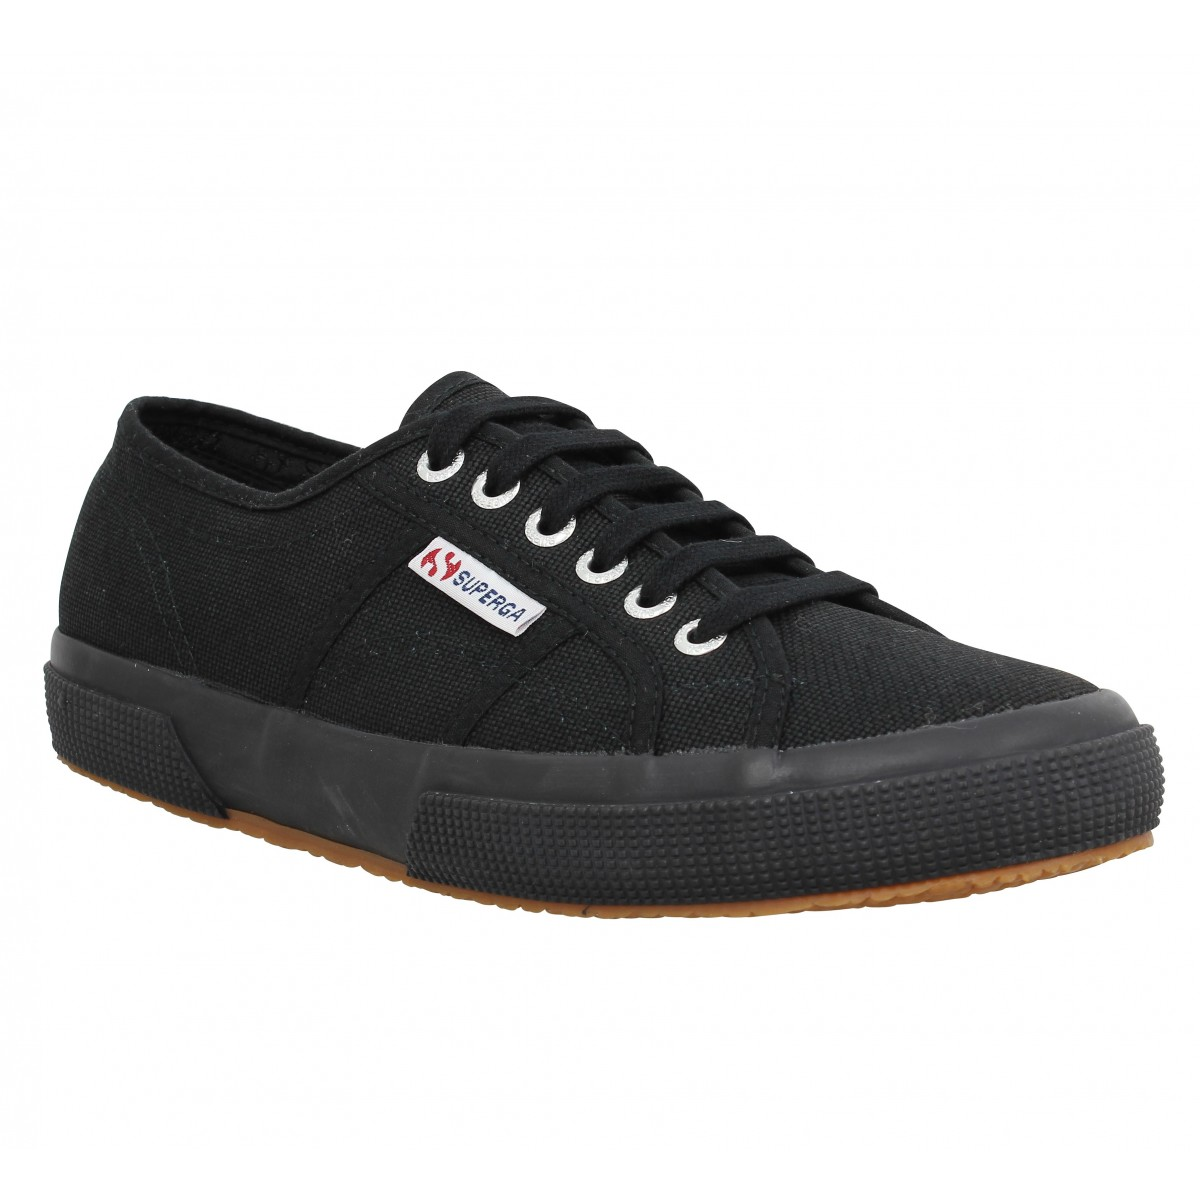 Baskets SUPERGA 2750 Homme Noir